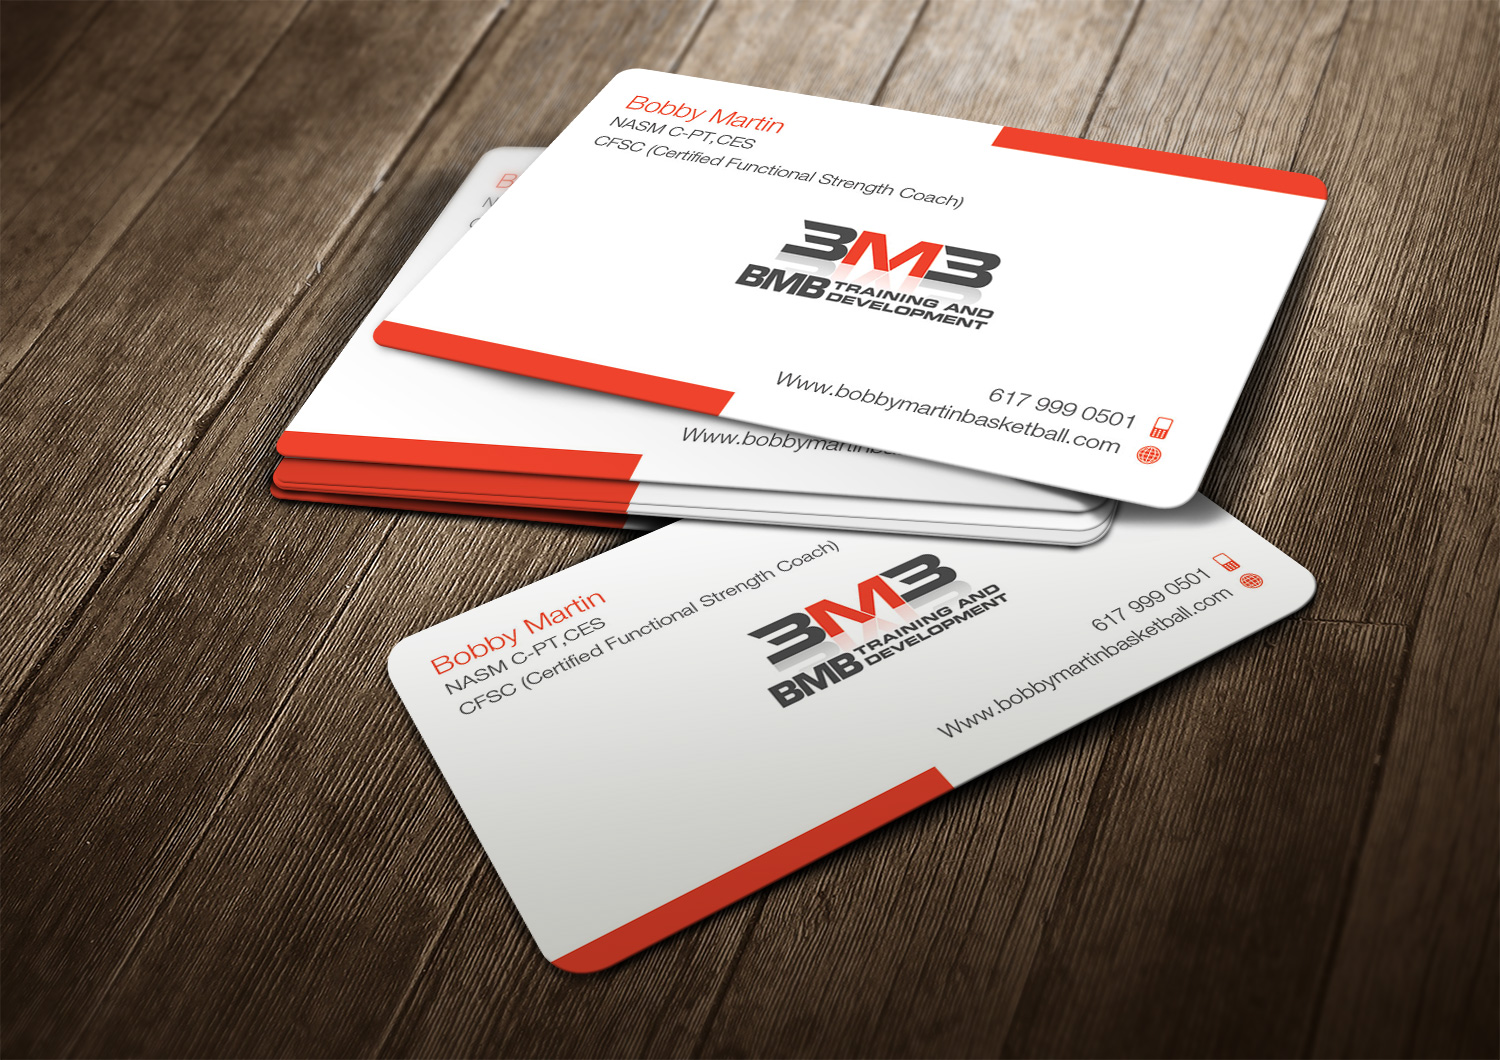 Business card design for bmb training and development llc by nilu business card design by nilu for i have a basketball training business combined with a strength colourmoves